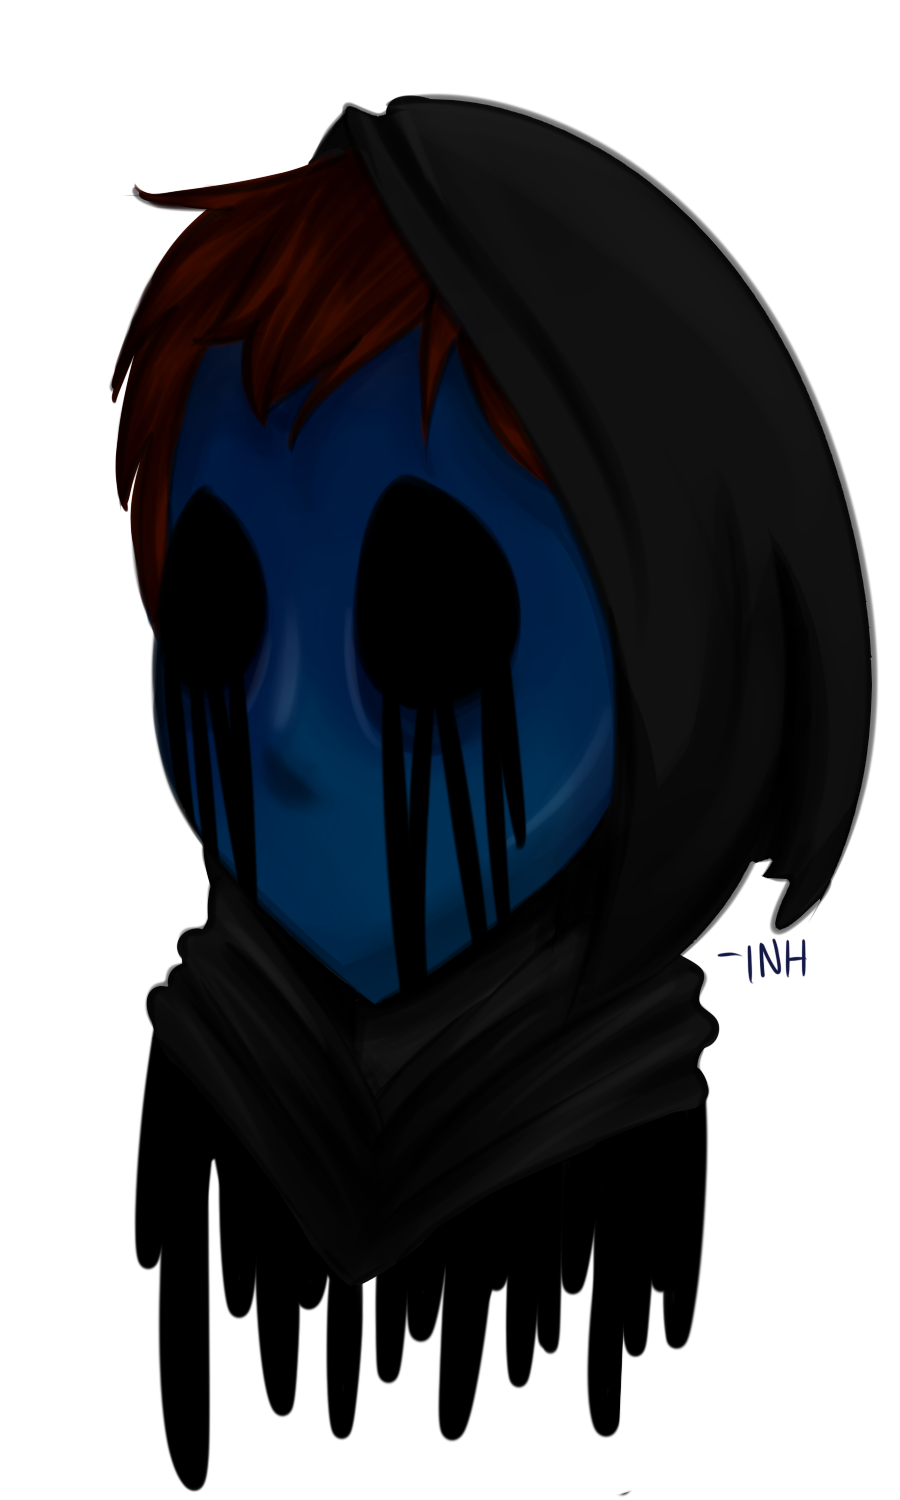 Eyeless Jack clipart eyless By Eyeless Jack InsertNightmareHere by